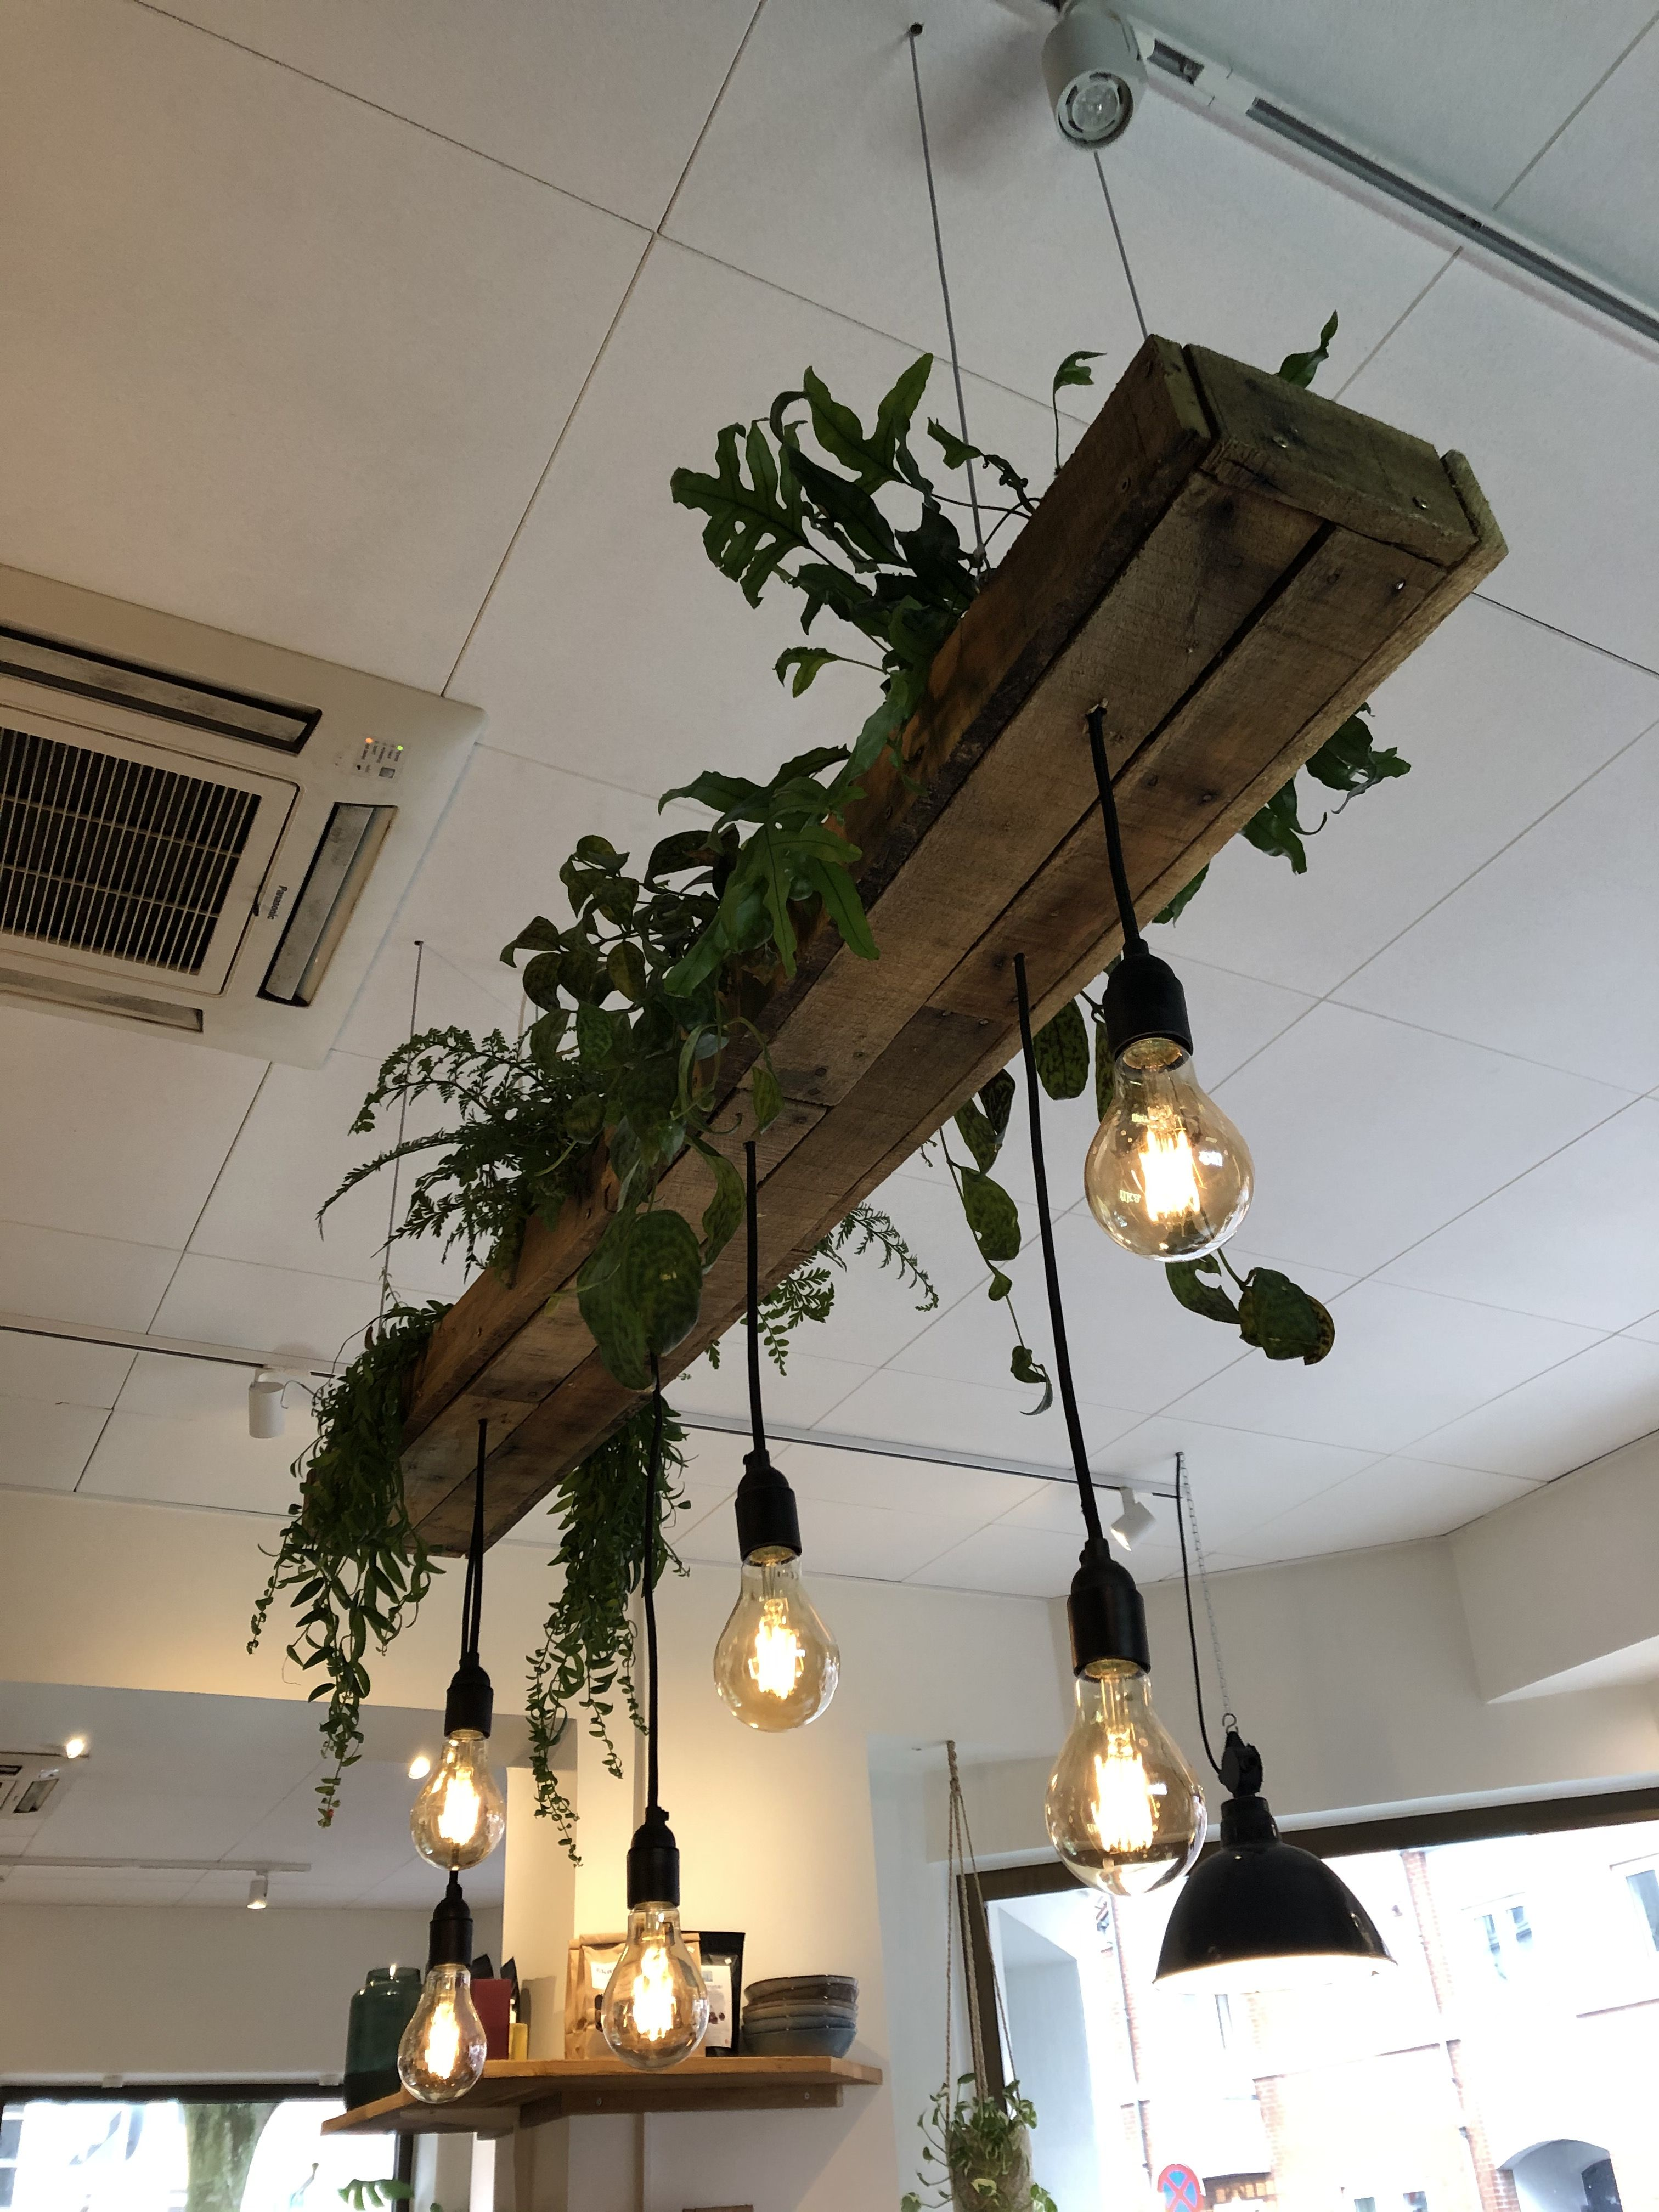 Pin By Pace Pattern On Lighting House Interior Decor House Plants Decor House Design